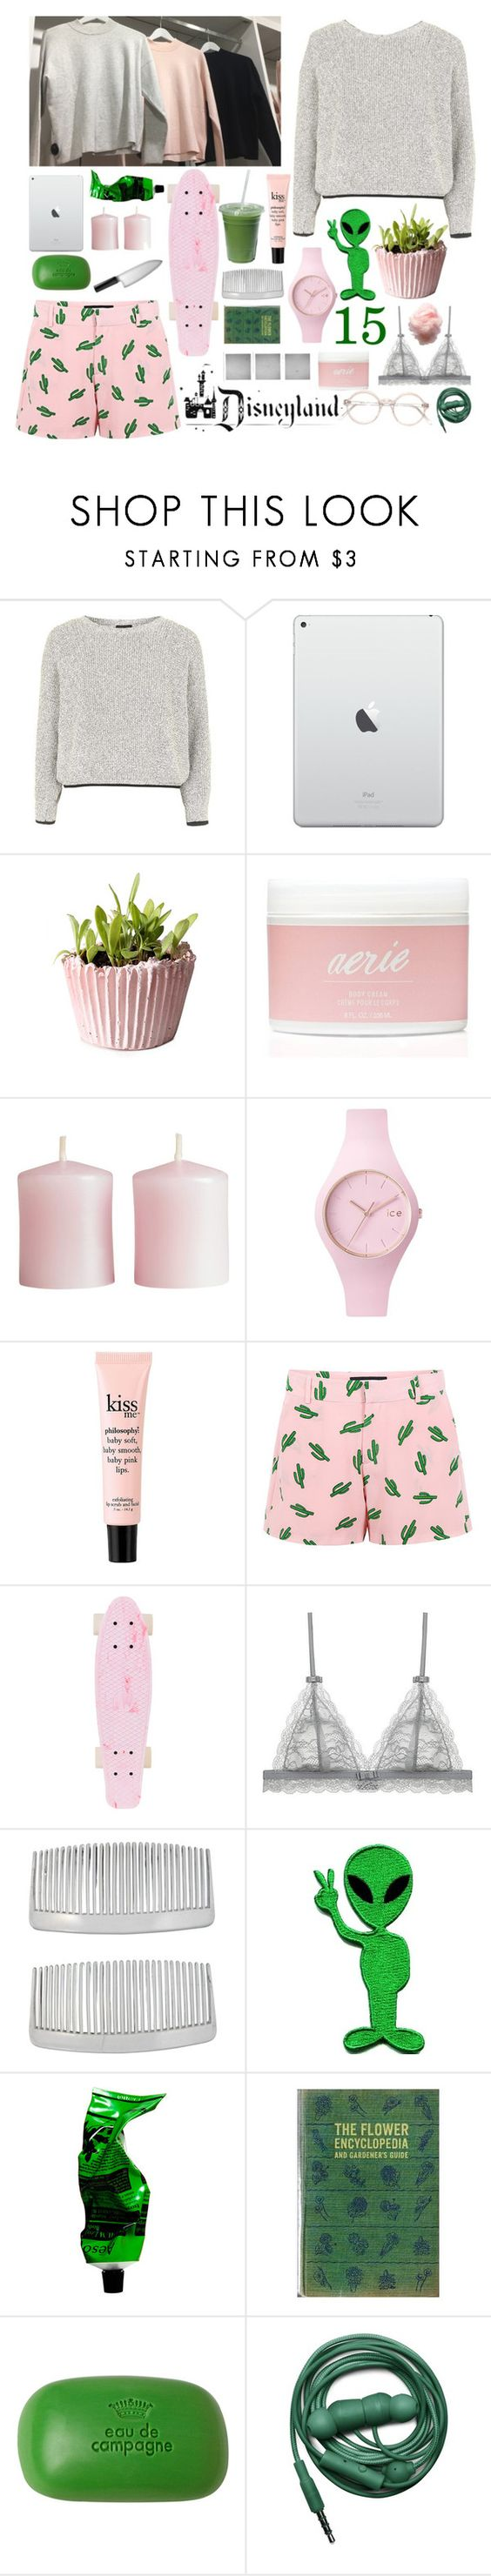 """contest entry"" by guccisalt ❤ liked on Polyvore featuring Topshop, Aerie, H&M, Ice-Watch, philosophy, American Retro, Holga, John Lewis, Retrò and Aesop"